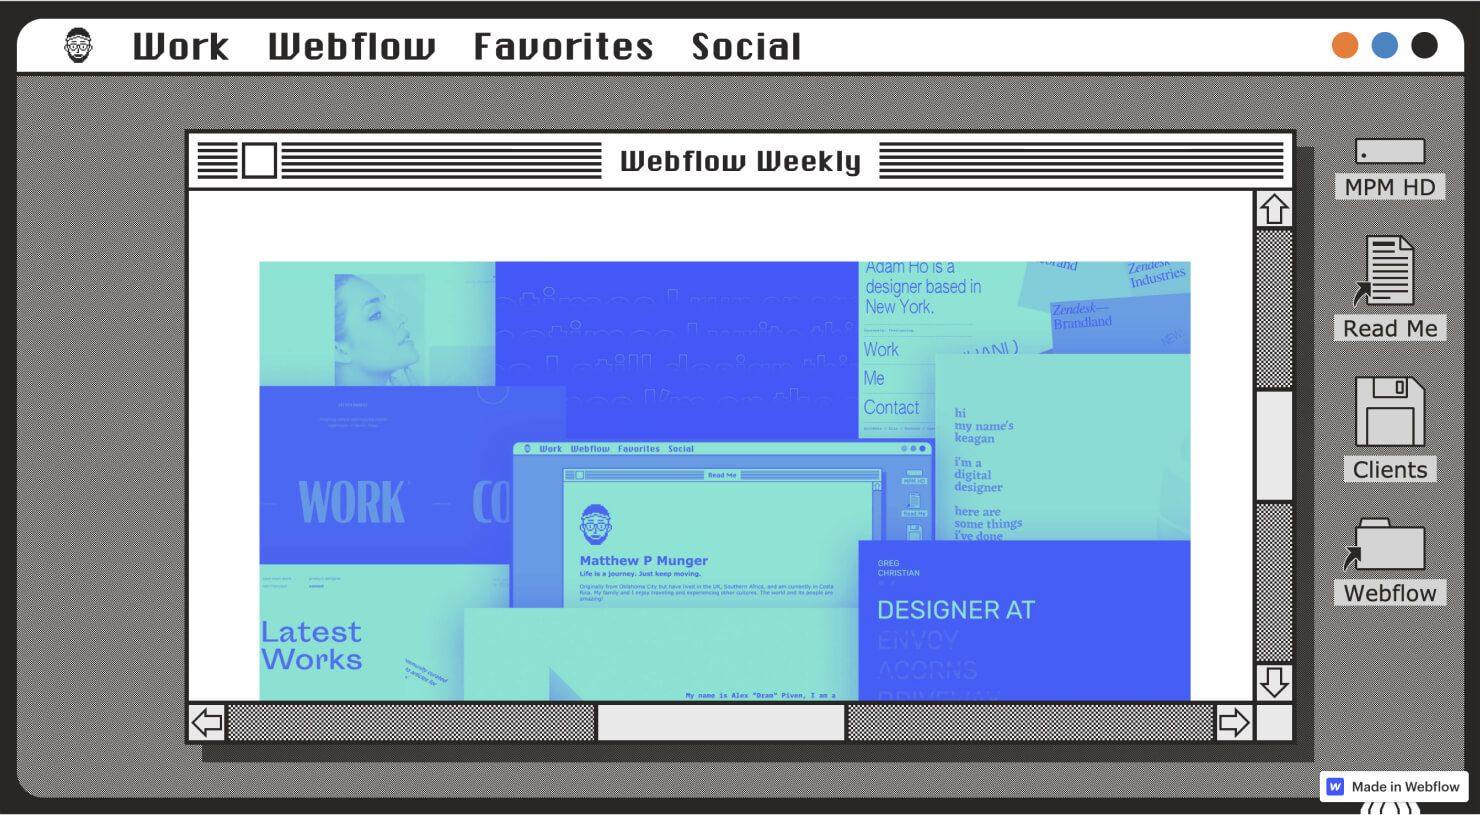 Matthew Munger's portfolio takes inspiration from the classic macOS interface, differentiating his portfolio from others.